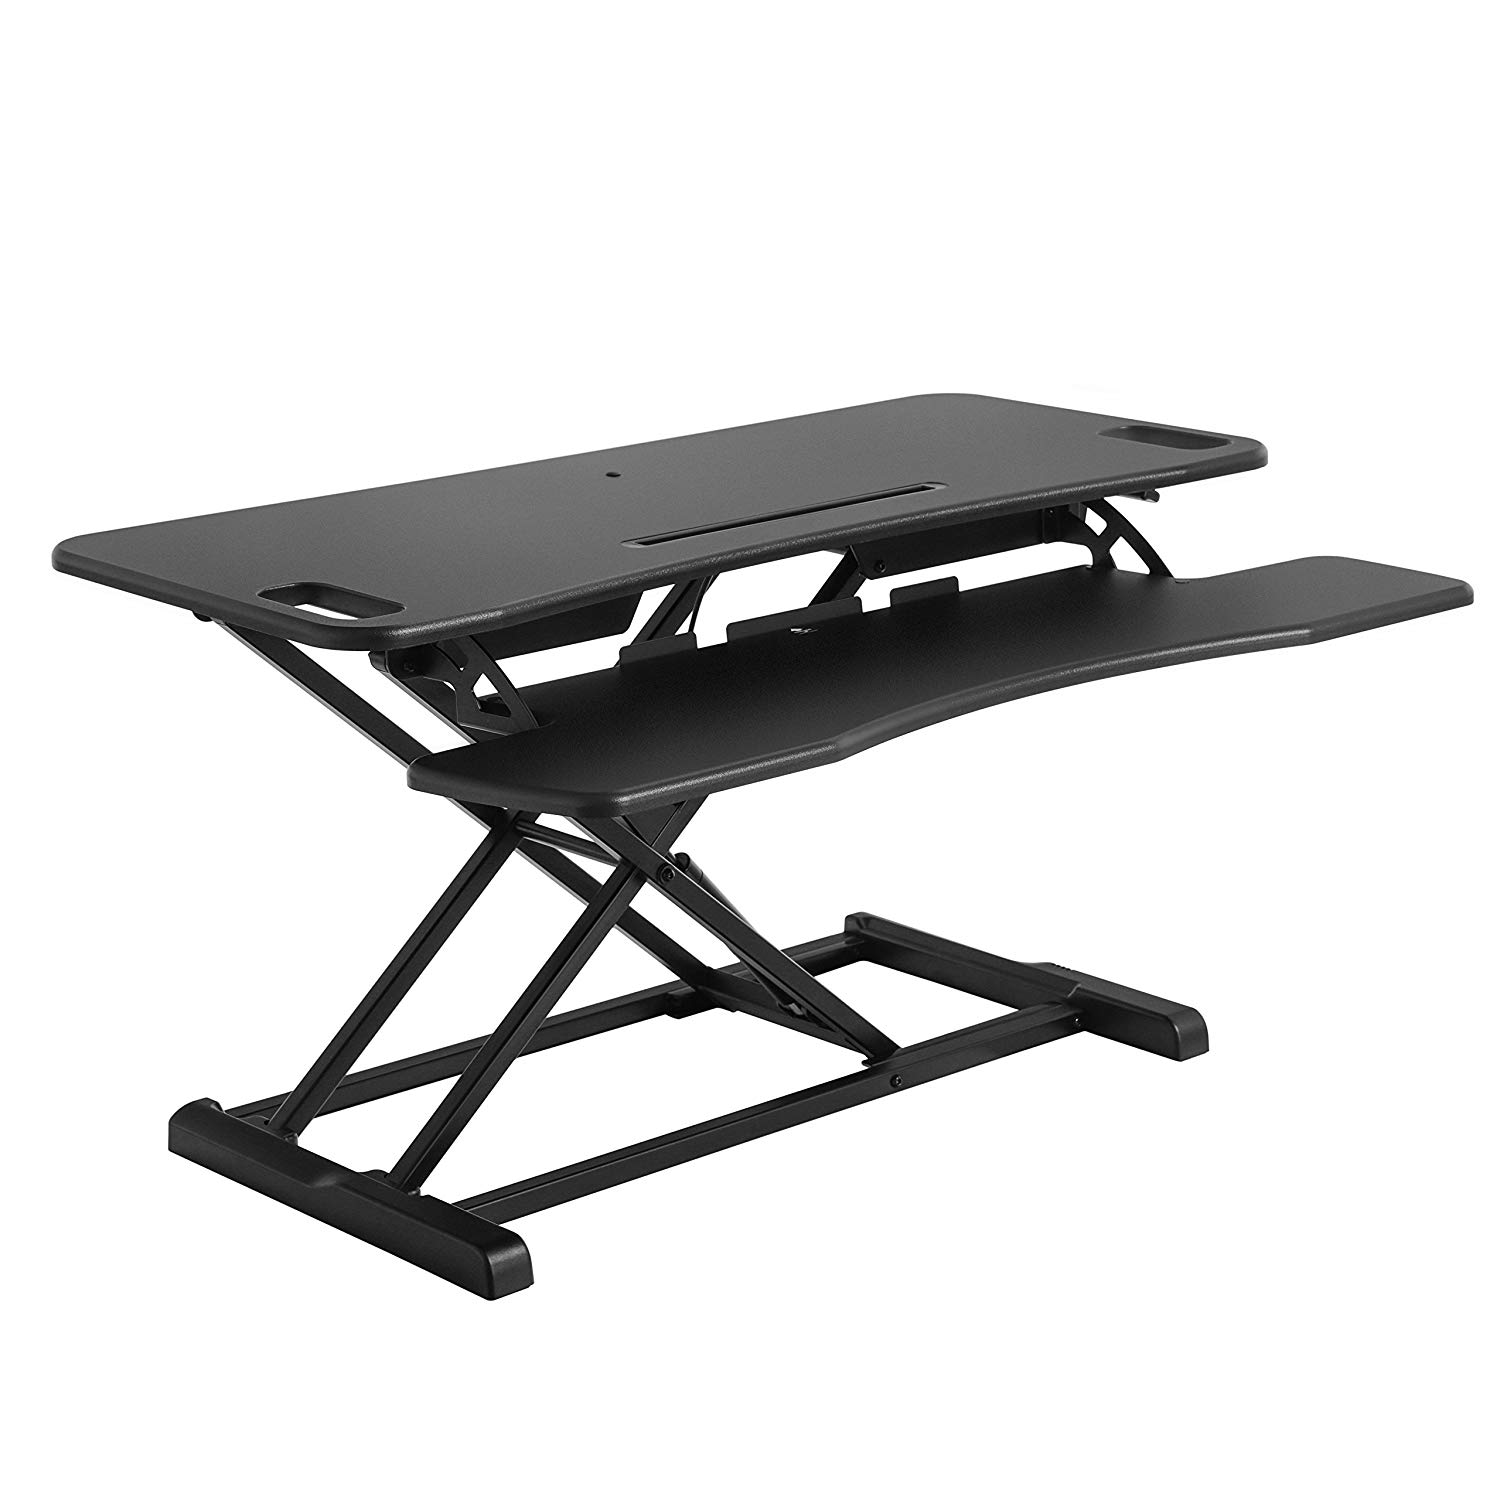 SONGMICS Standing Desk, Height Adjustable Sit to Stand Desk, for Computer, Laptop and Office Supply, with Removable Keyboard Tray - Black, ULSD06BK